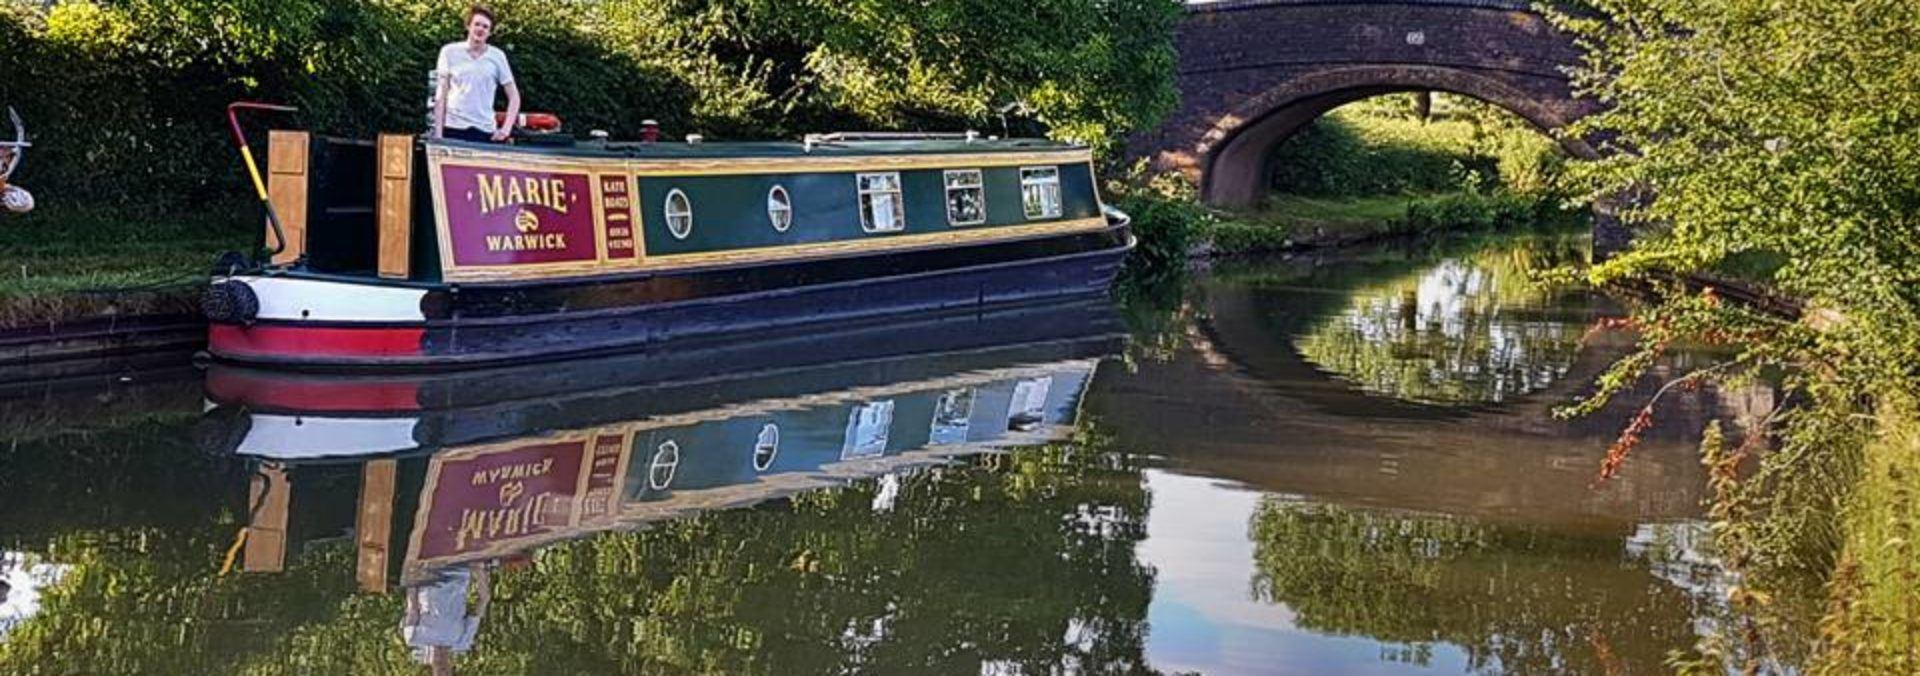 Canal Boat Holidays, Canal Boat Hire, Narrowboat Hire, Narrowboat Holidays,